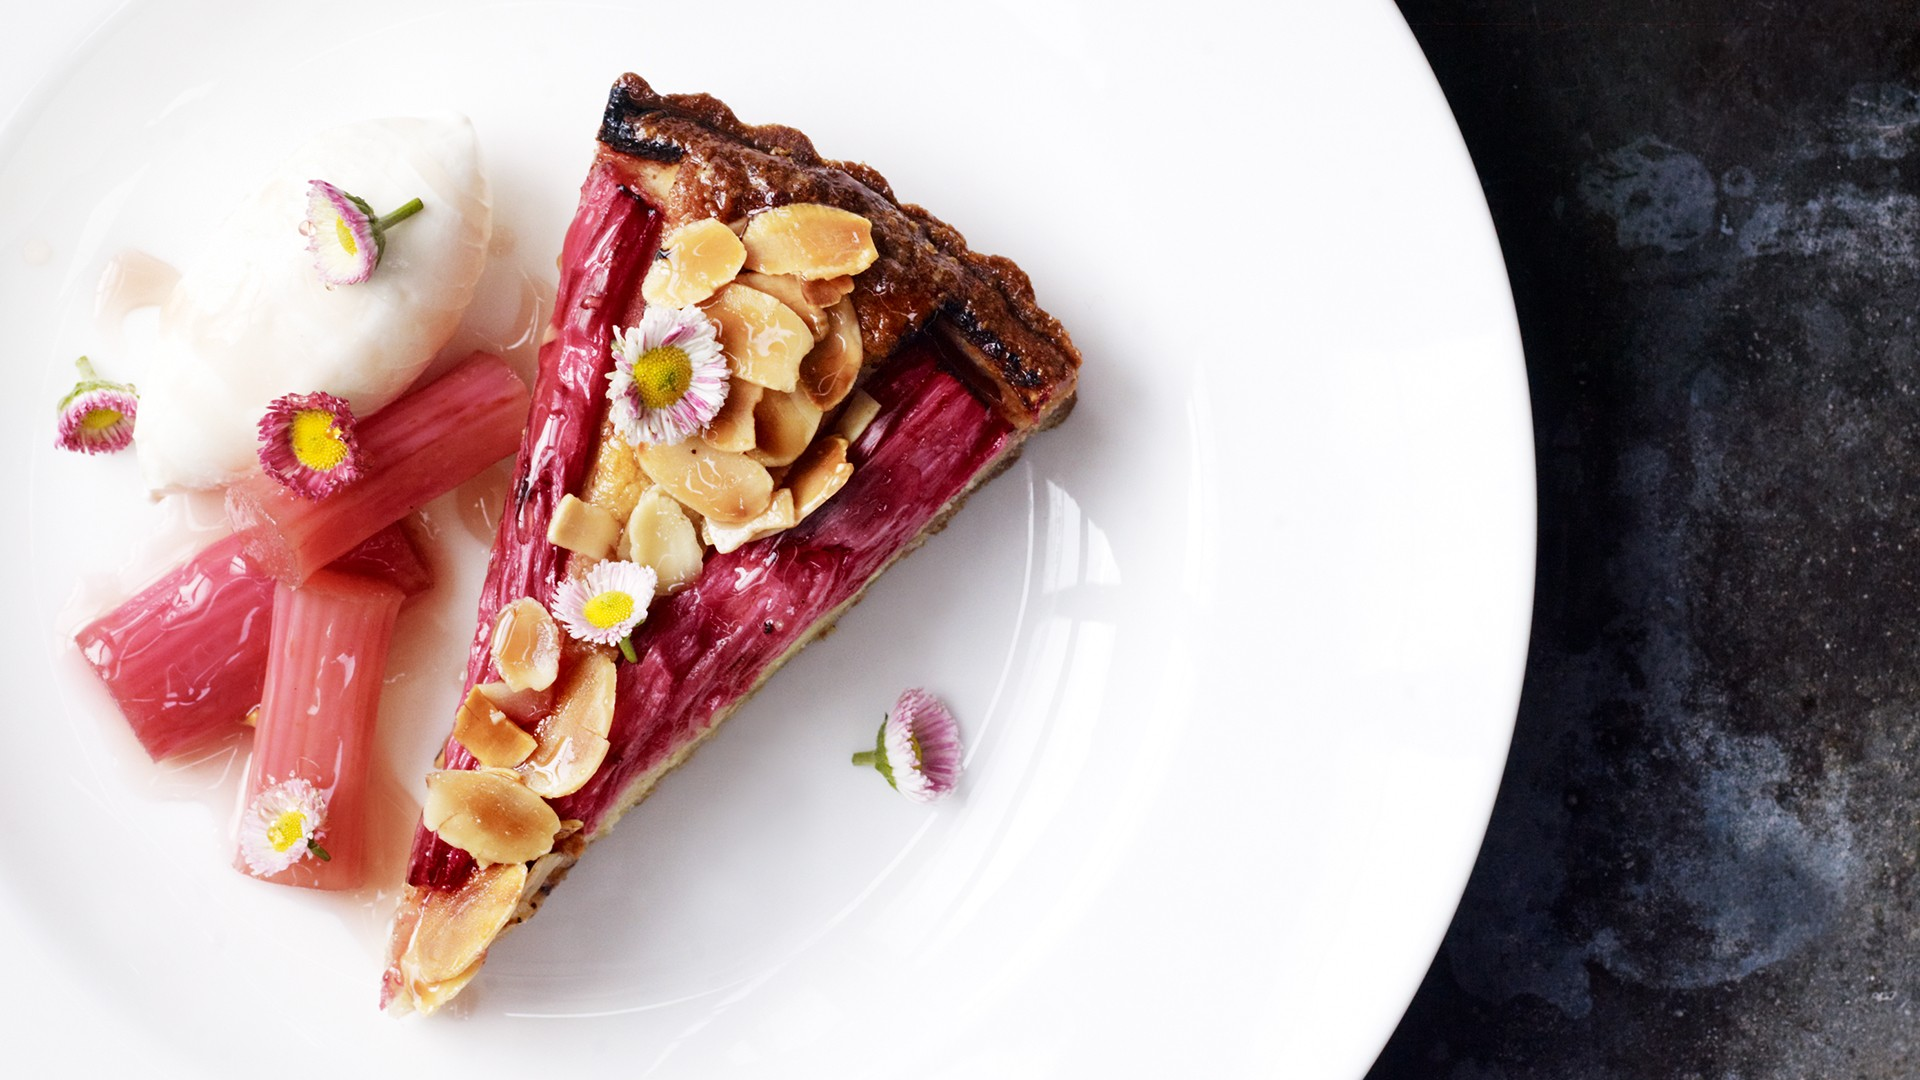 Rhubarb tart from The Petersham, Covent Garden